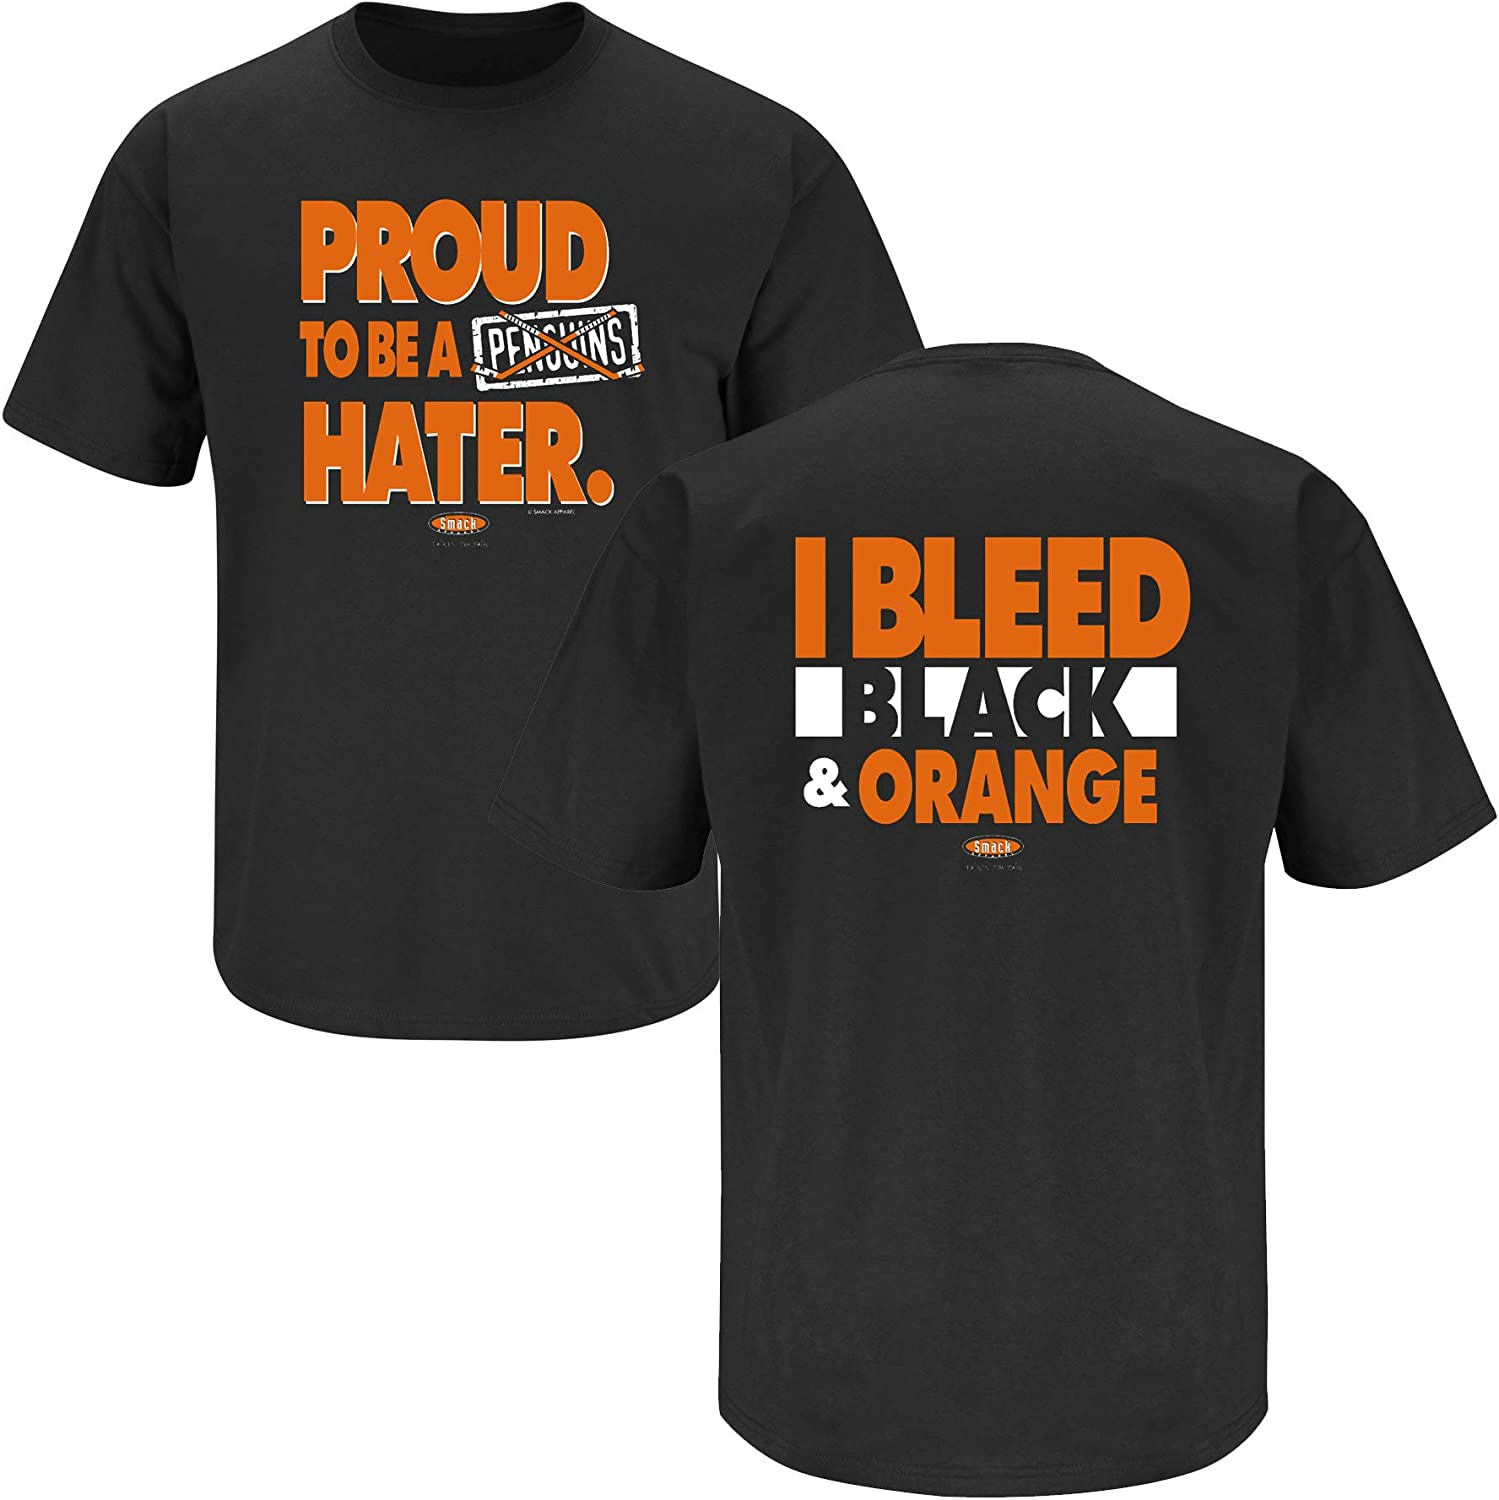 Philadelphia Hockey Fans. Proud to be Pittsburgh a Online limited product Black T Hater Regular store